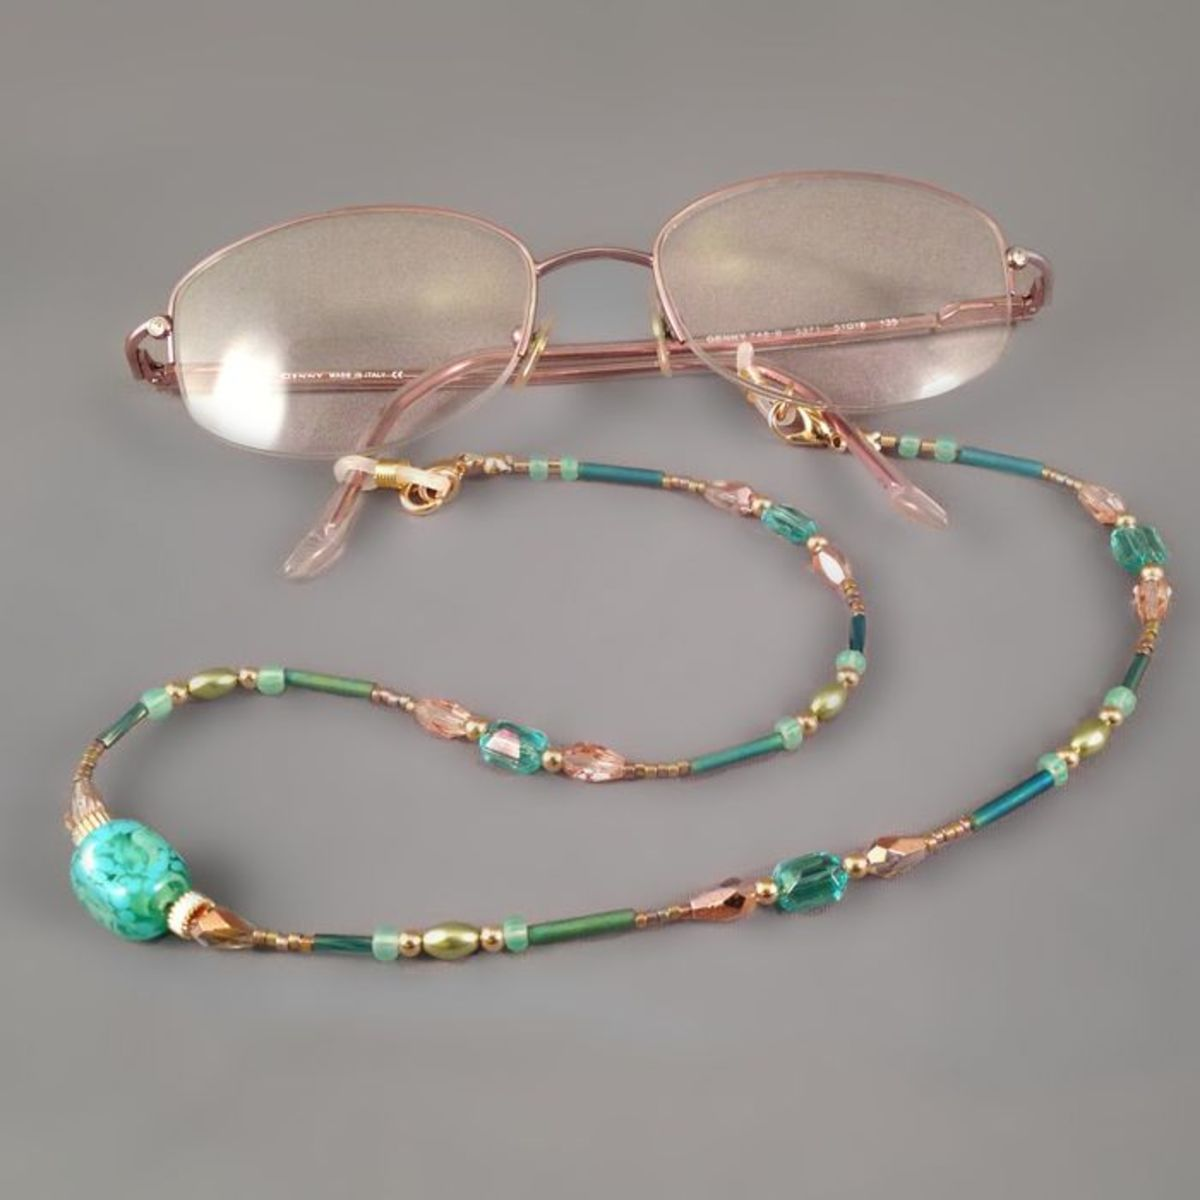 Eyeglasses attached to the finished beaded chain